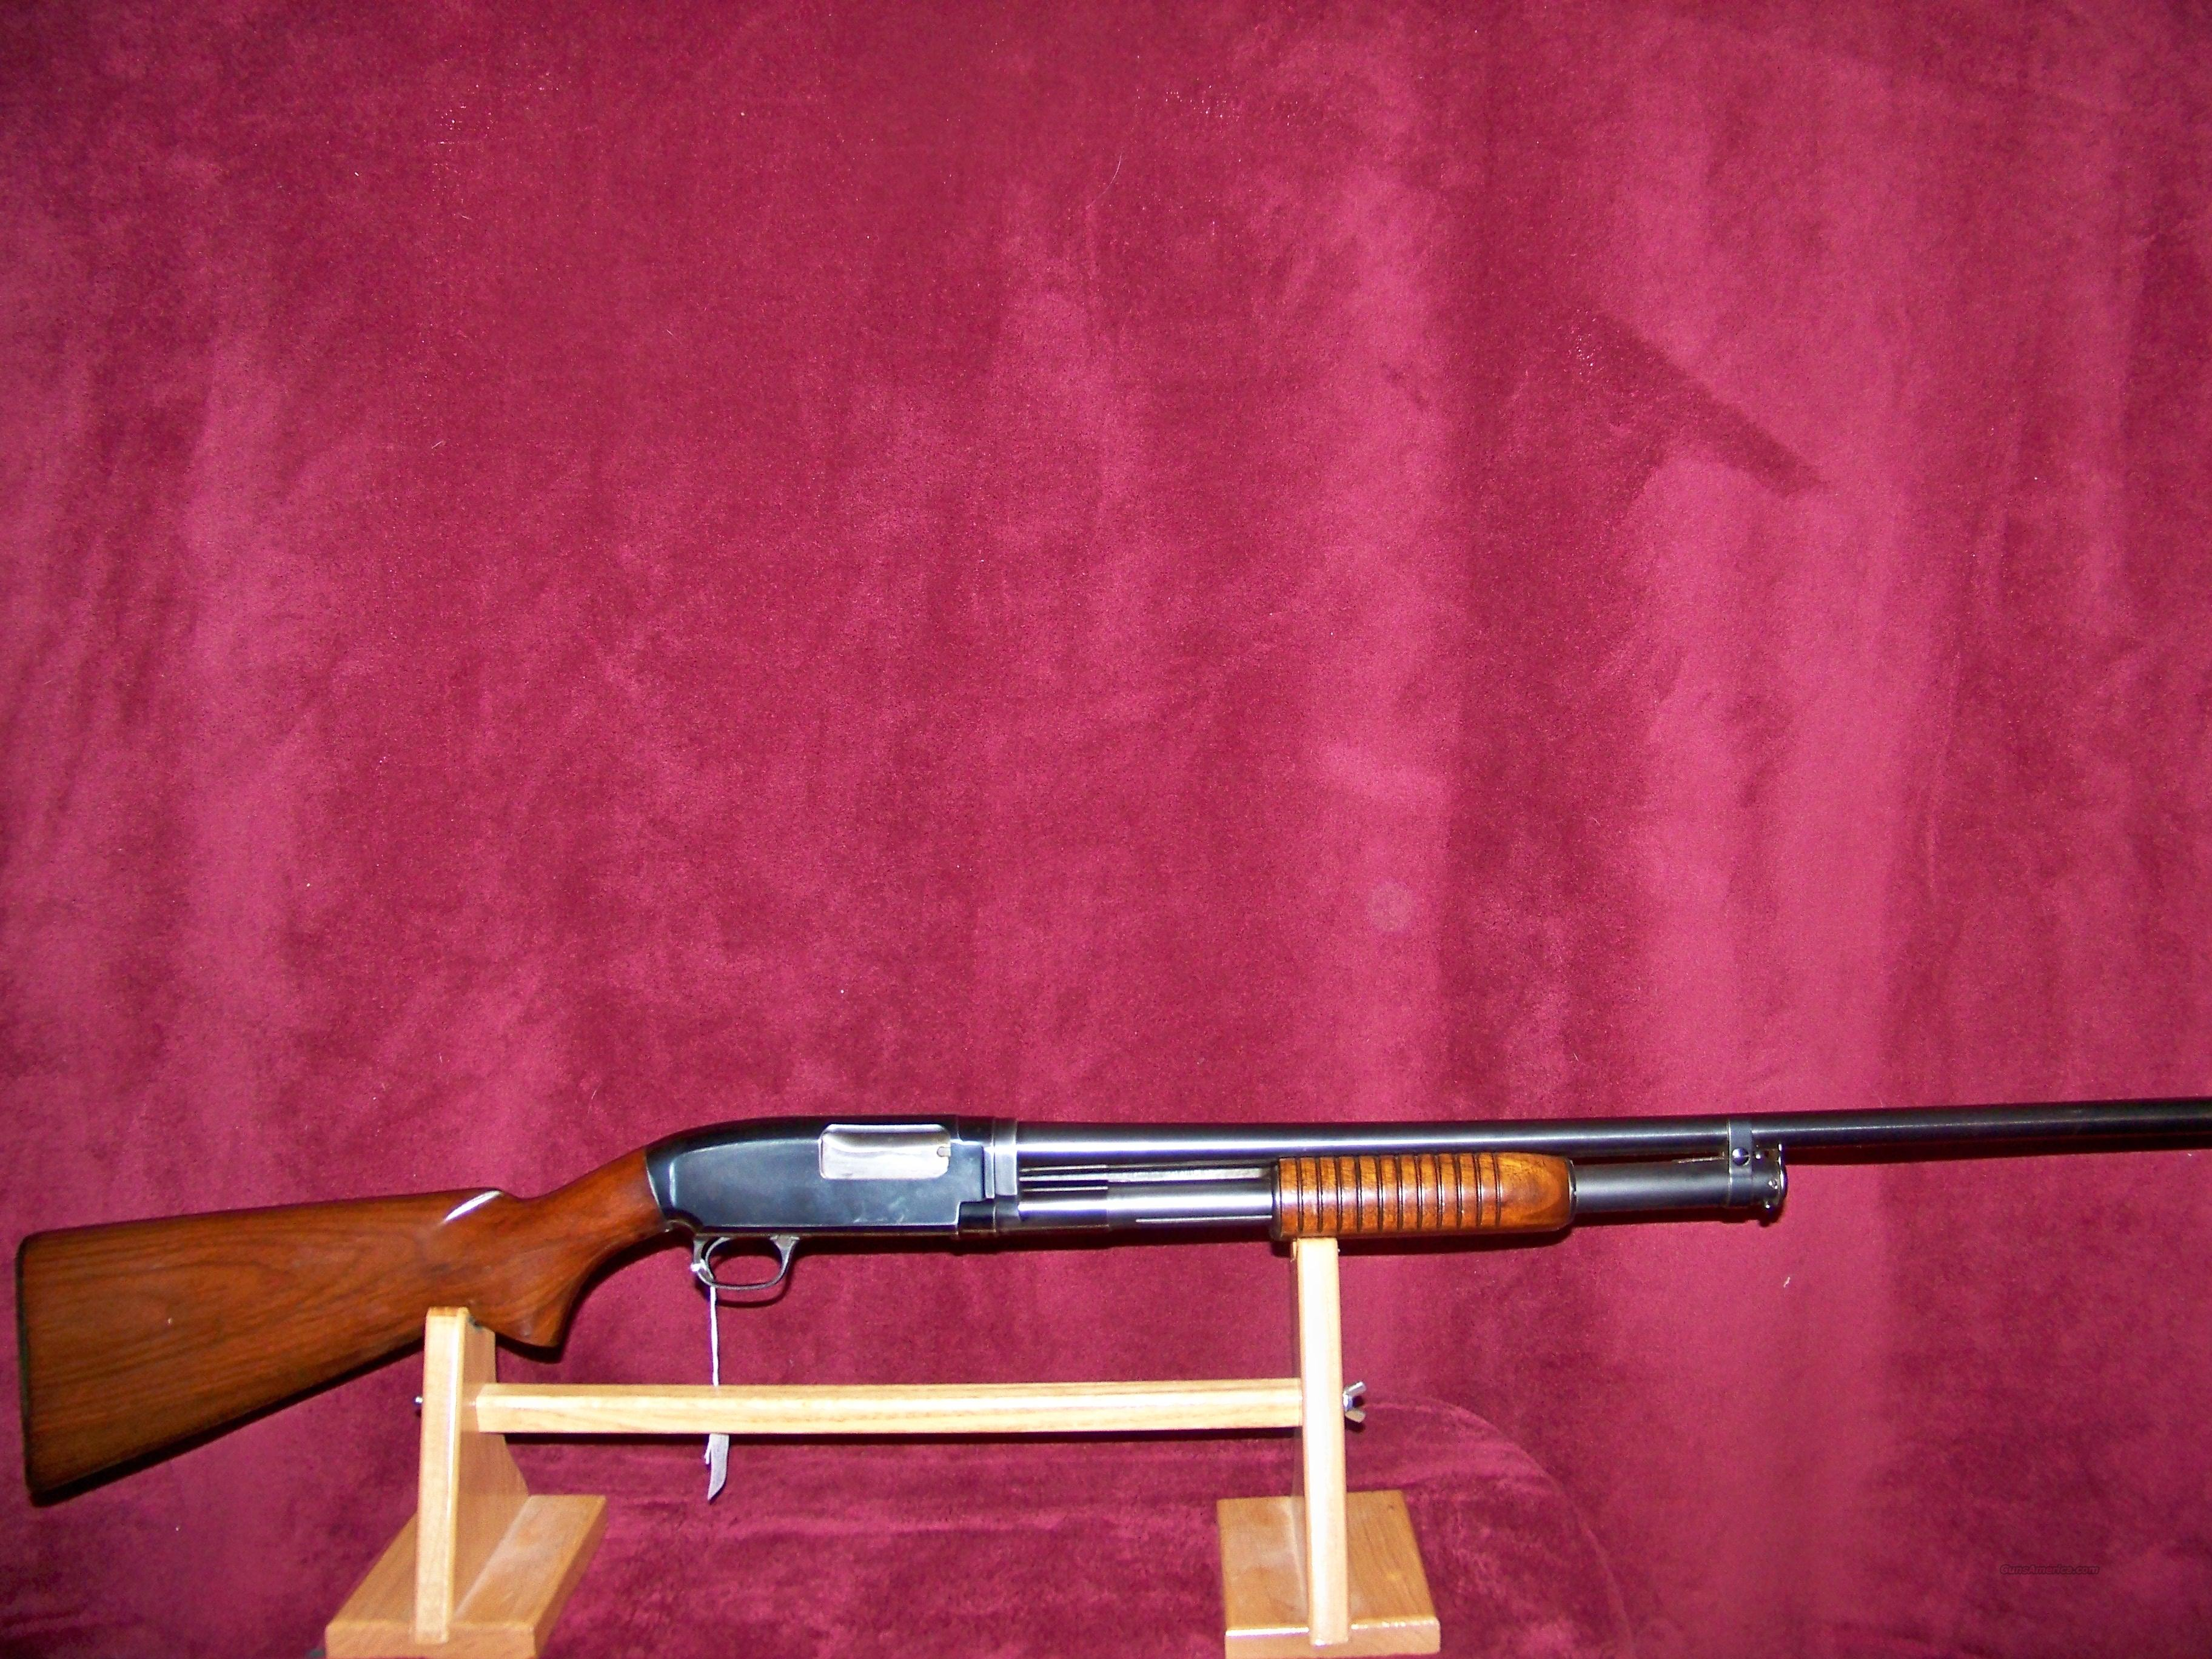 winchester shotgun dating Winchester rifles, winchester rifle & shotgun 1969+, winchester shotguns spencer slide action shotguns lc smith serial numbers and date of manufacture.